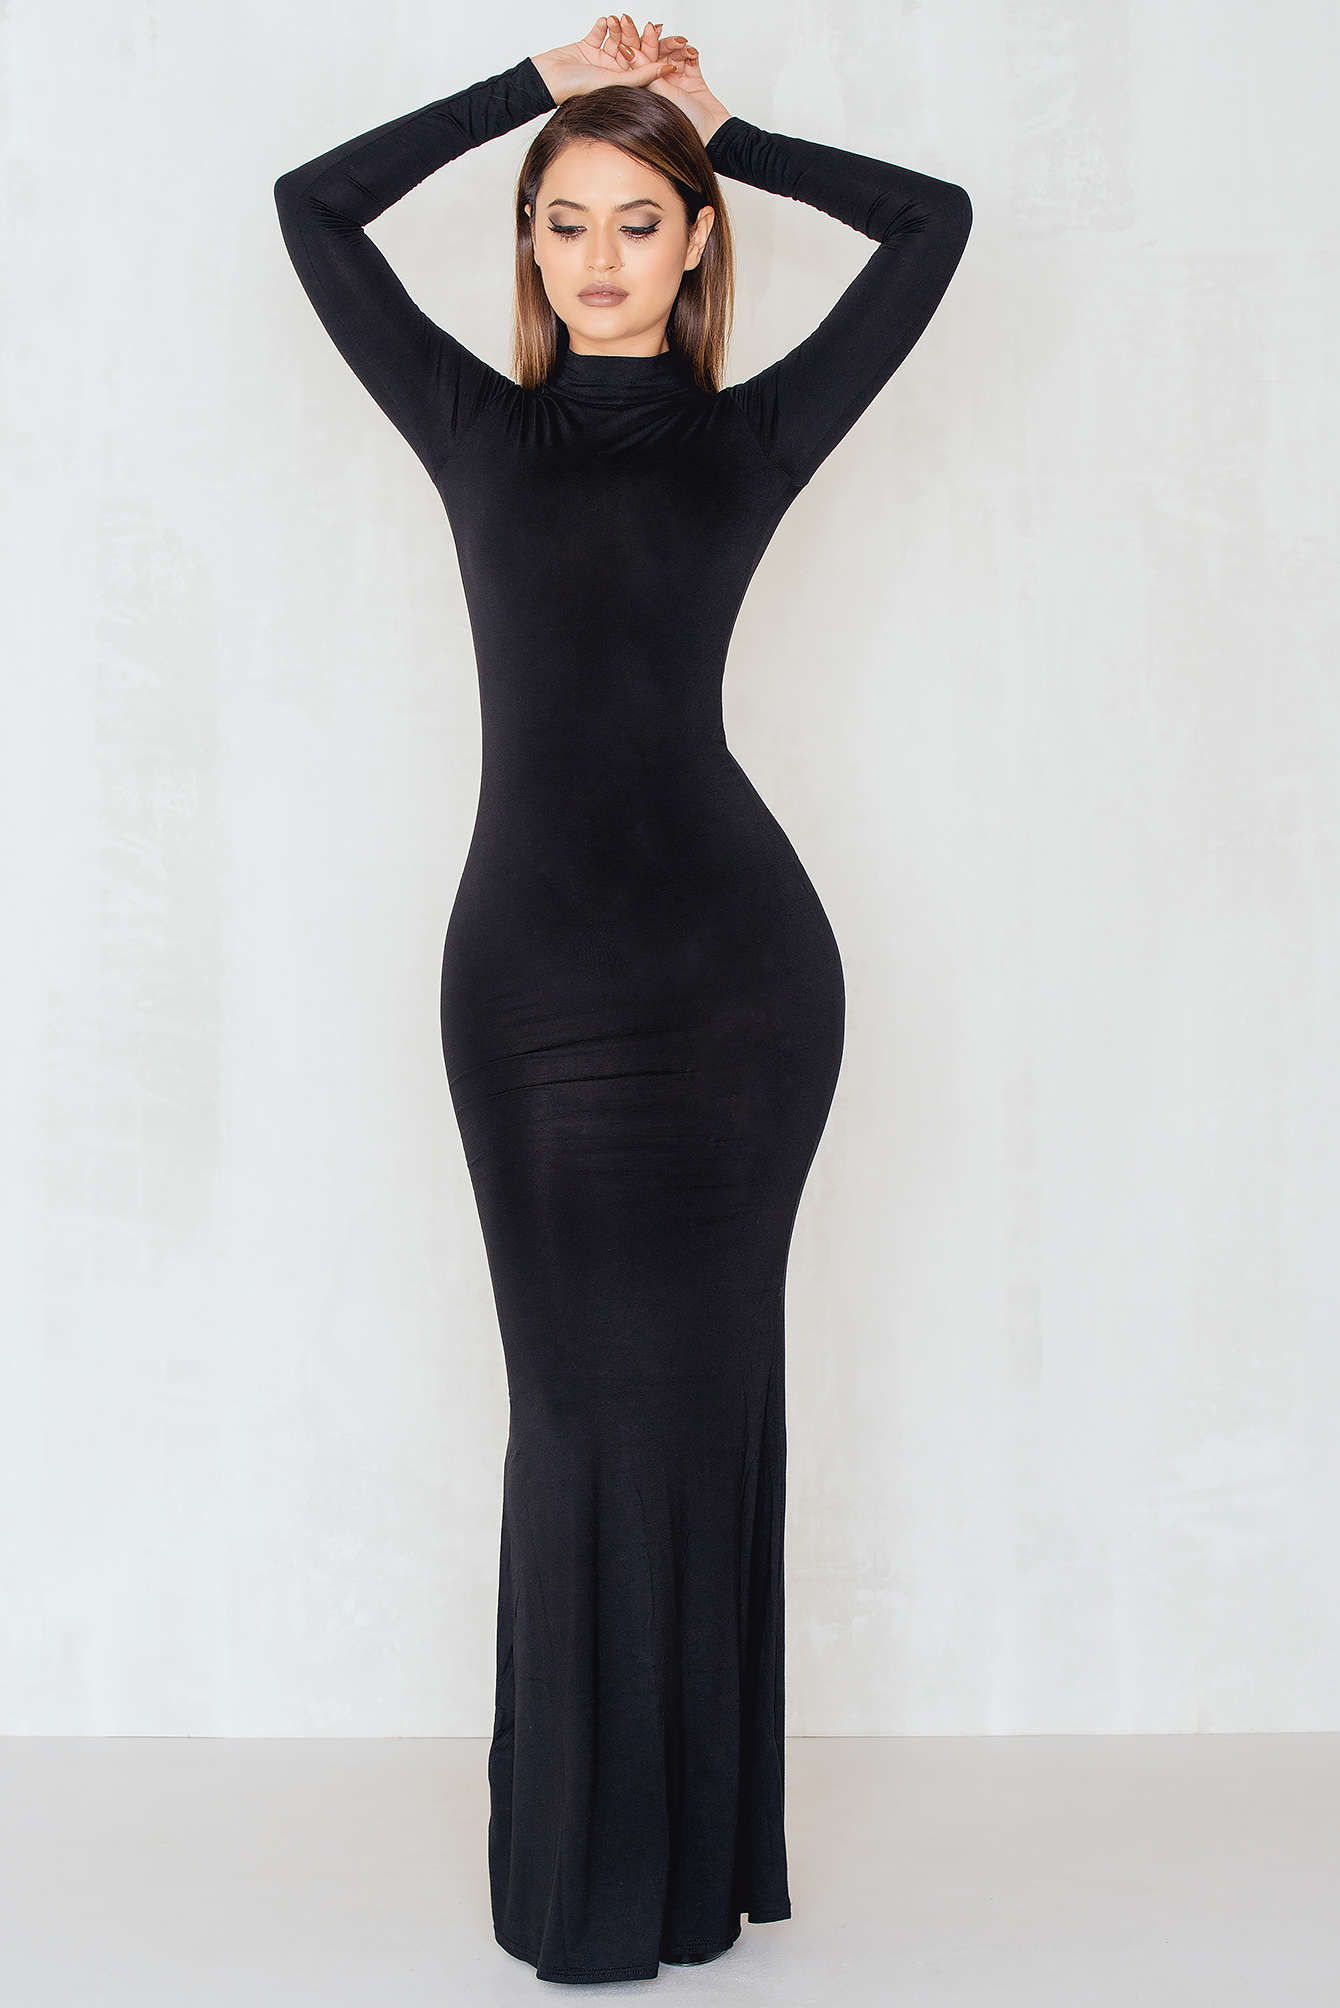 Black dress long - Prepare To Crush Em In This Fantastic Black Dress The High Neck Long Sleeve